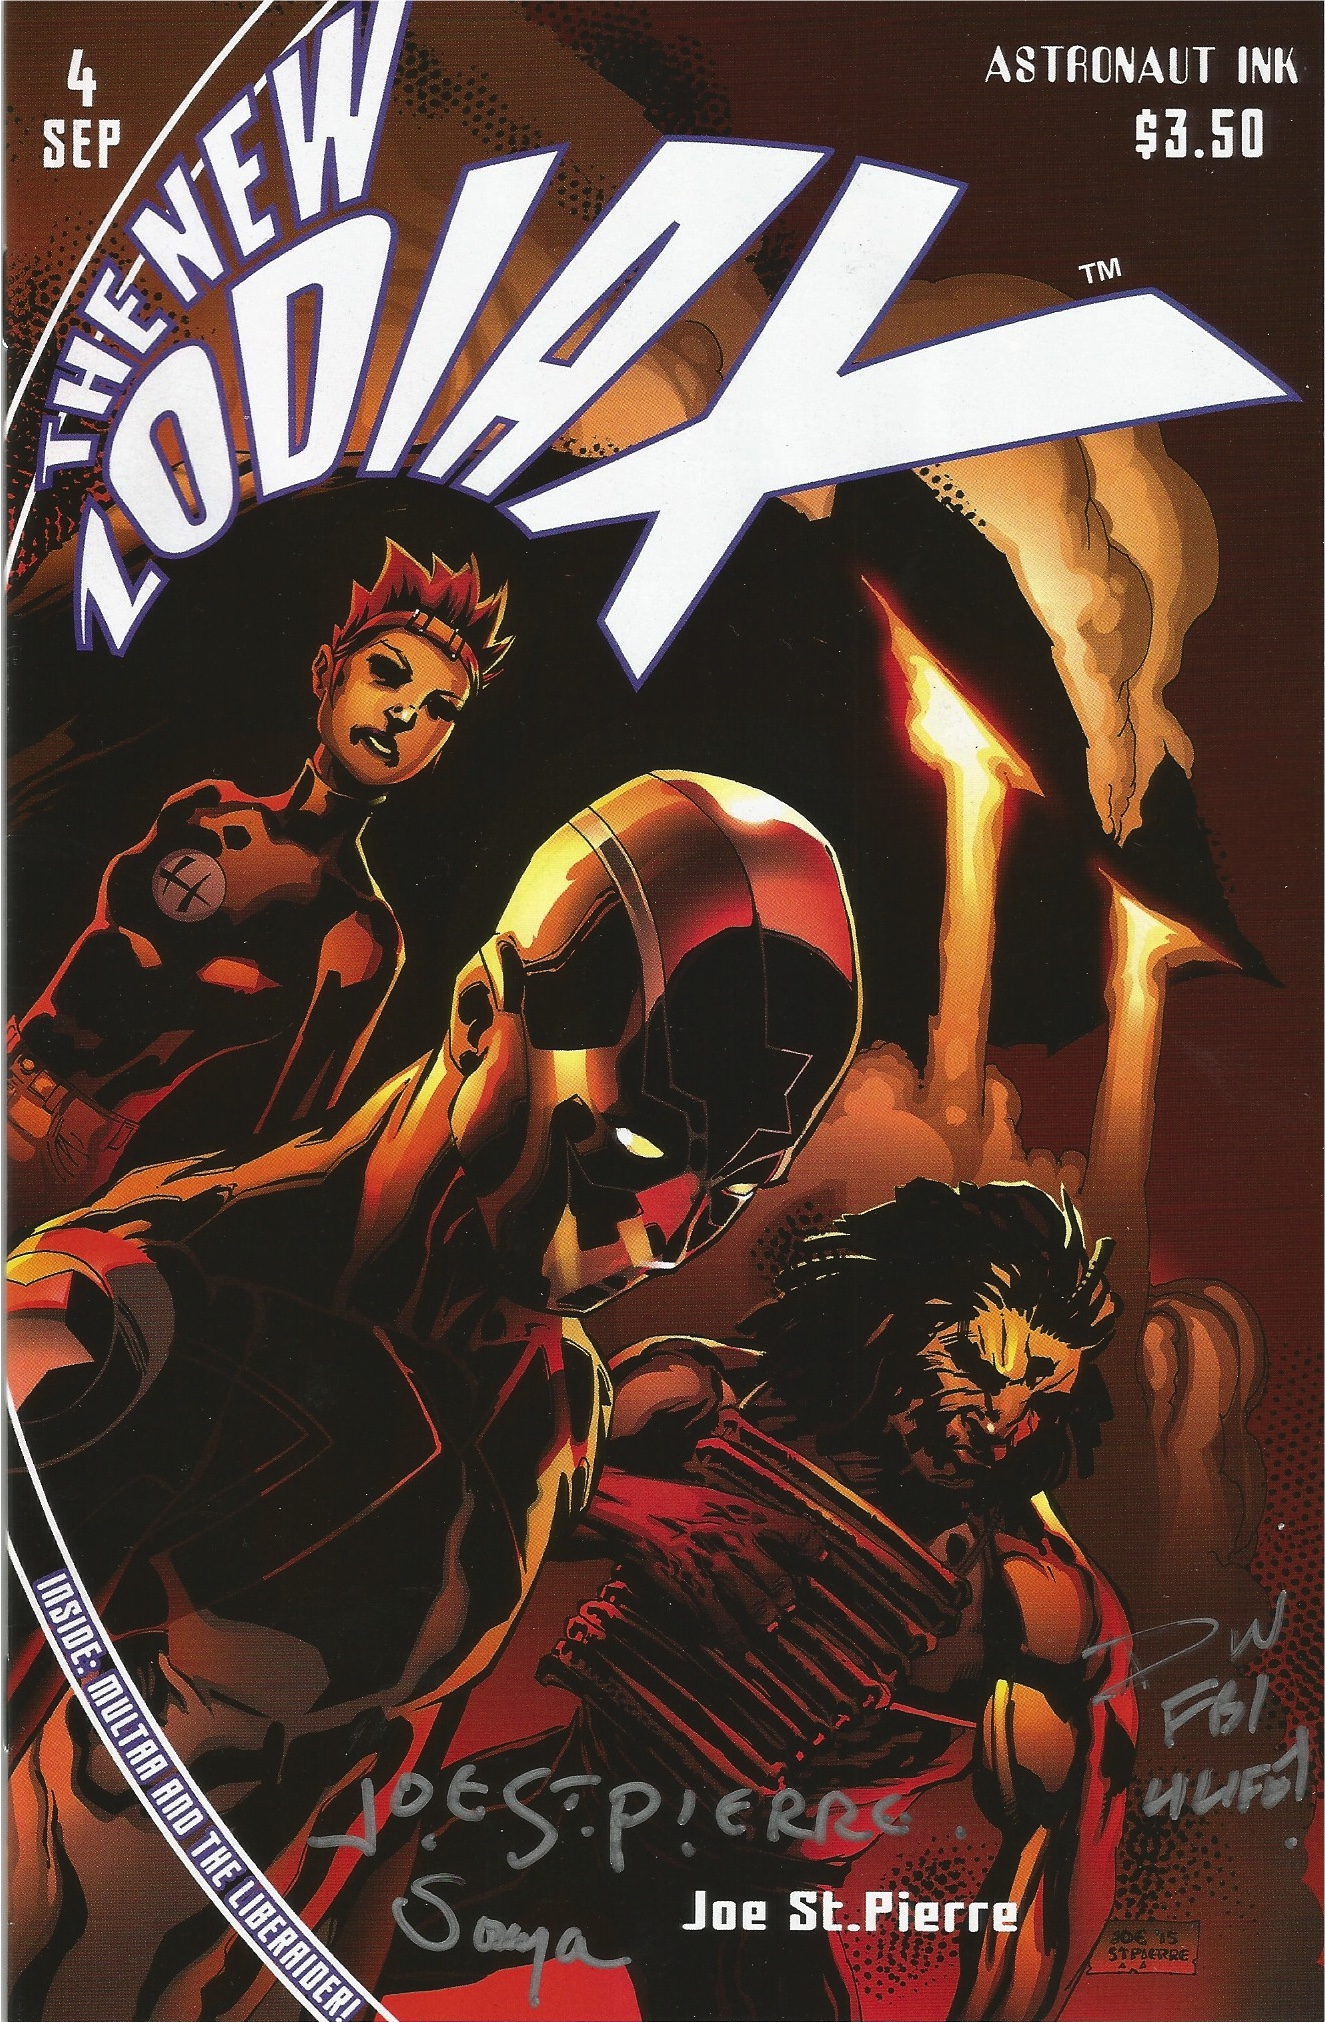 INDIE COMIC REVIEW: The New Zodiax #4 - Multaa